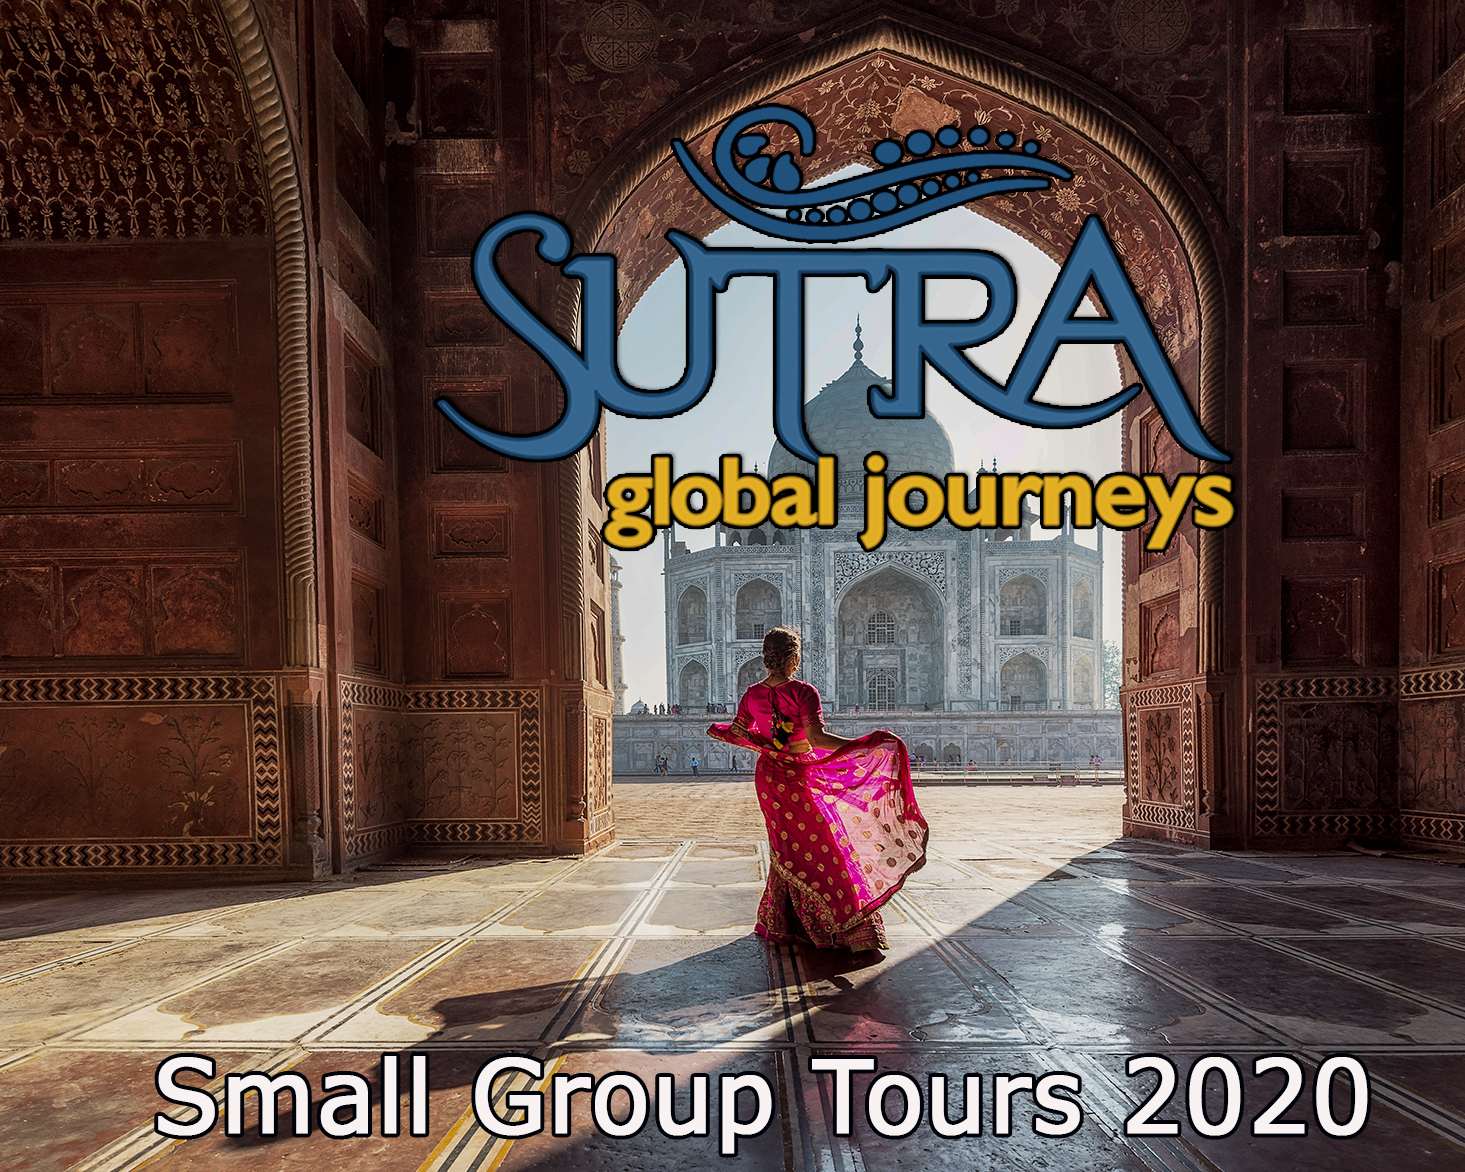 Copy of Sutra Global Journeys 2020 - Bali, India, Morocco